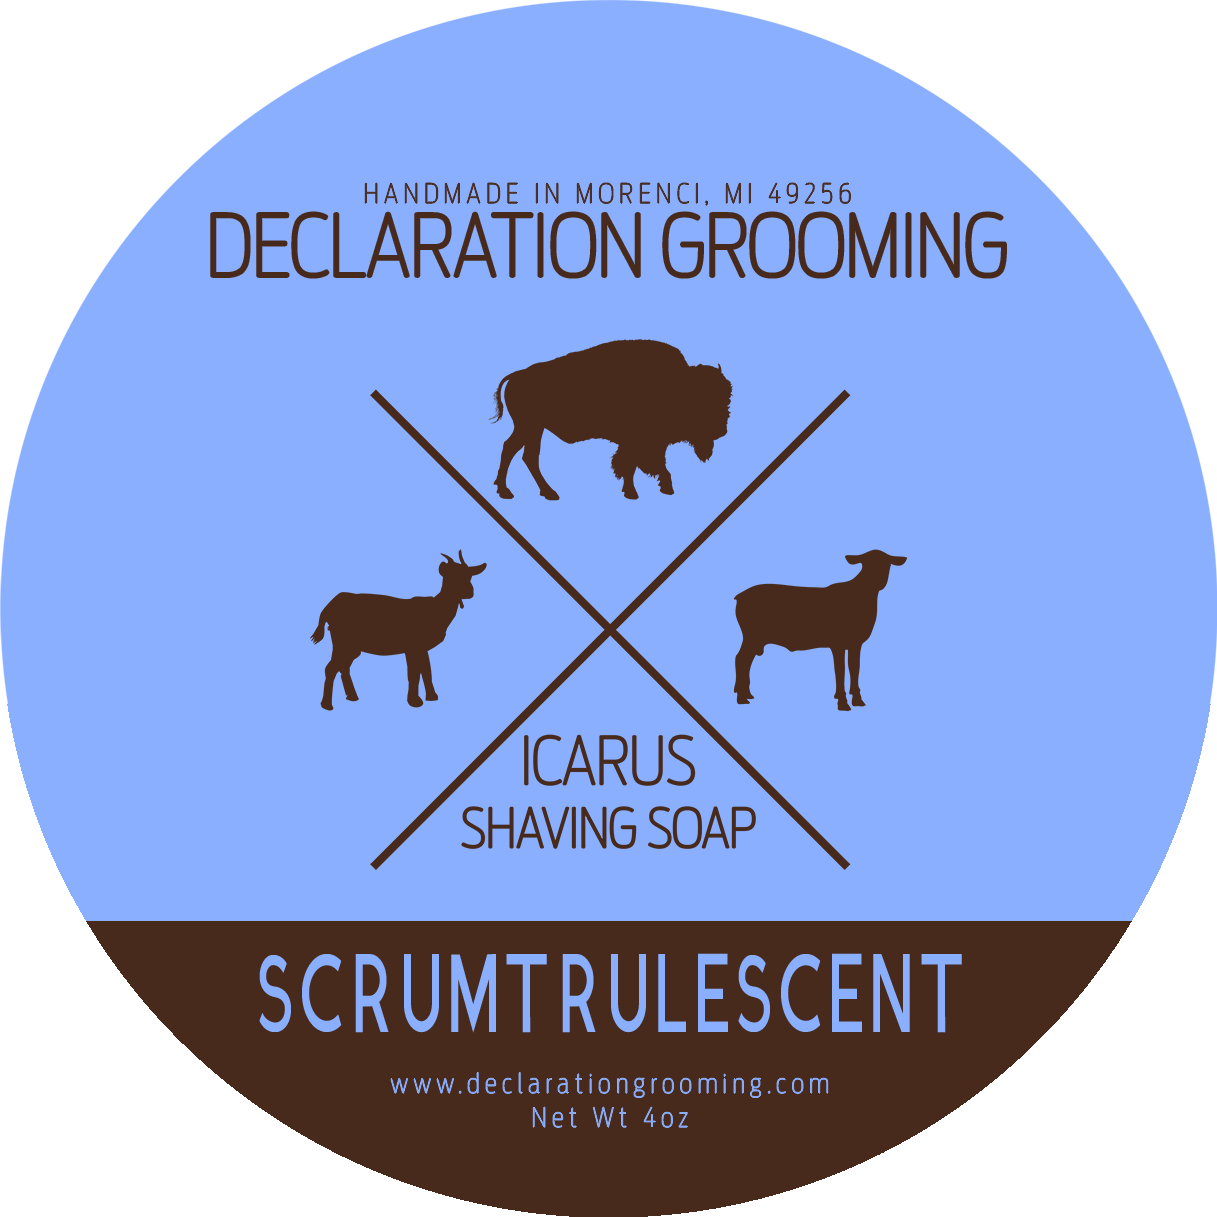 Declaration Grooming - Scrumtrulescent - Soap image